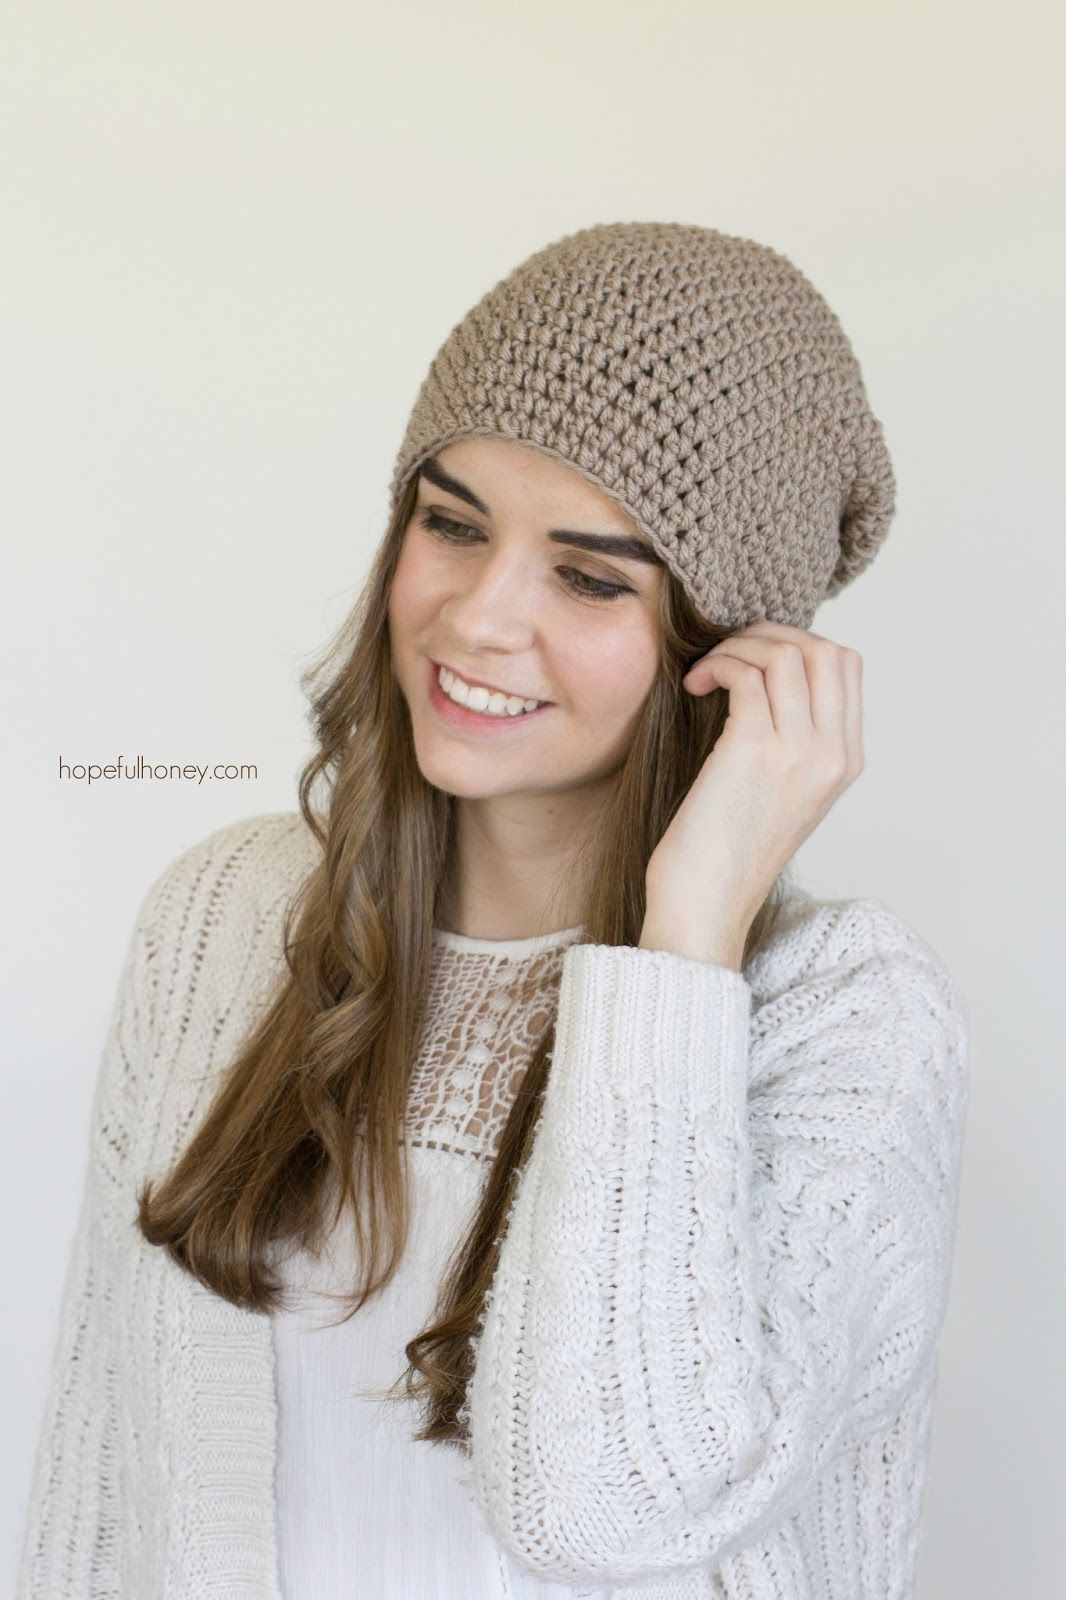 Toasted Wheat Slouchy Beanie - Free Crochet Pattern | Gorros, Hilo y ...